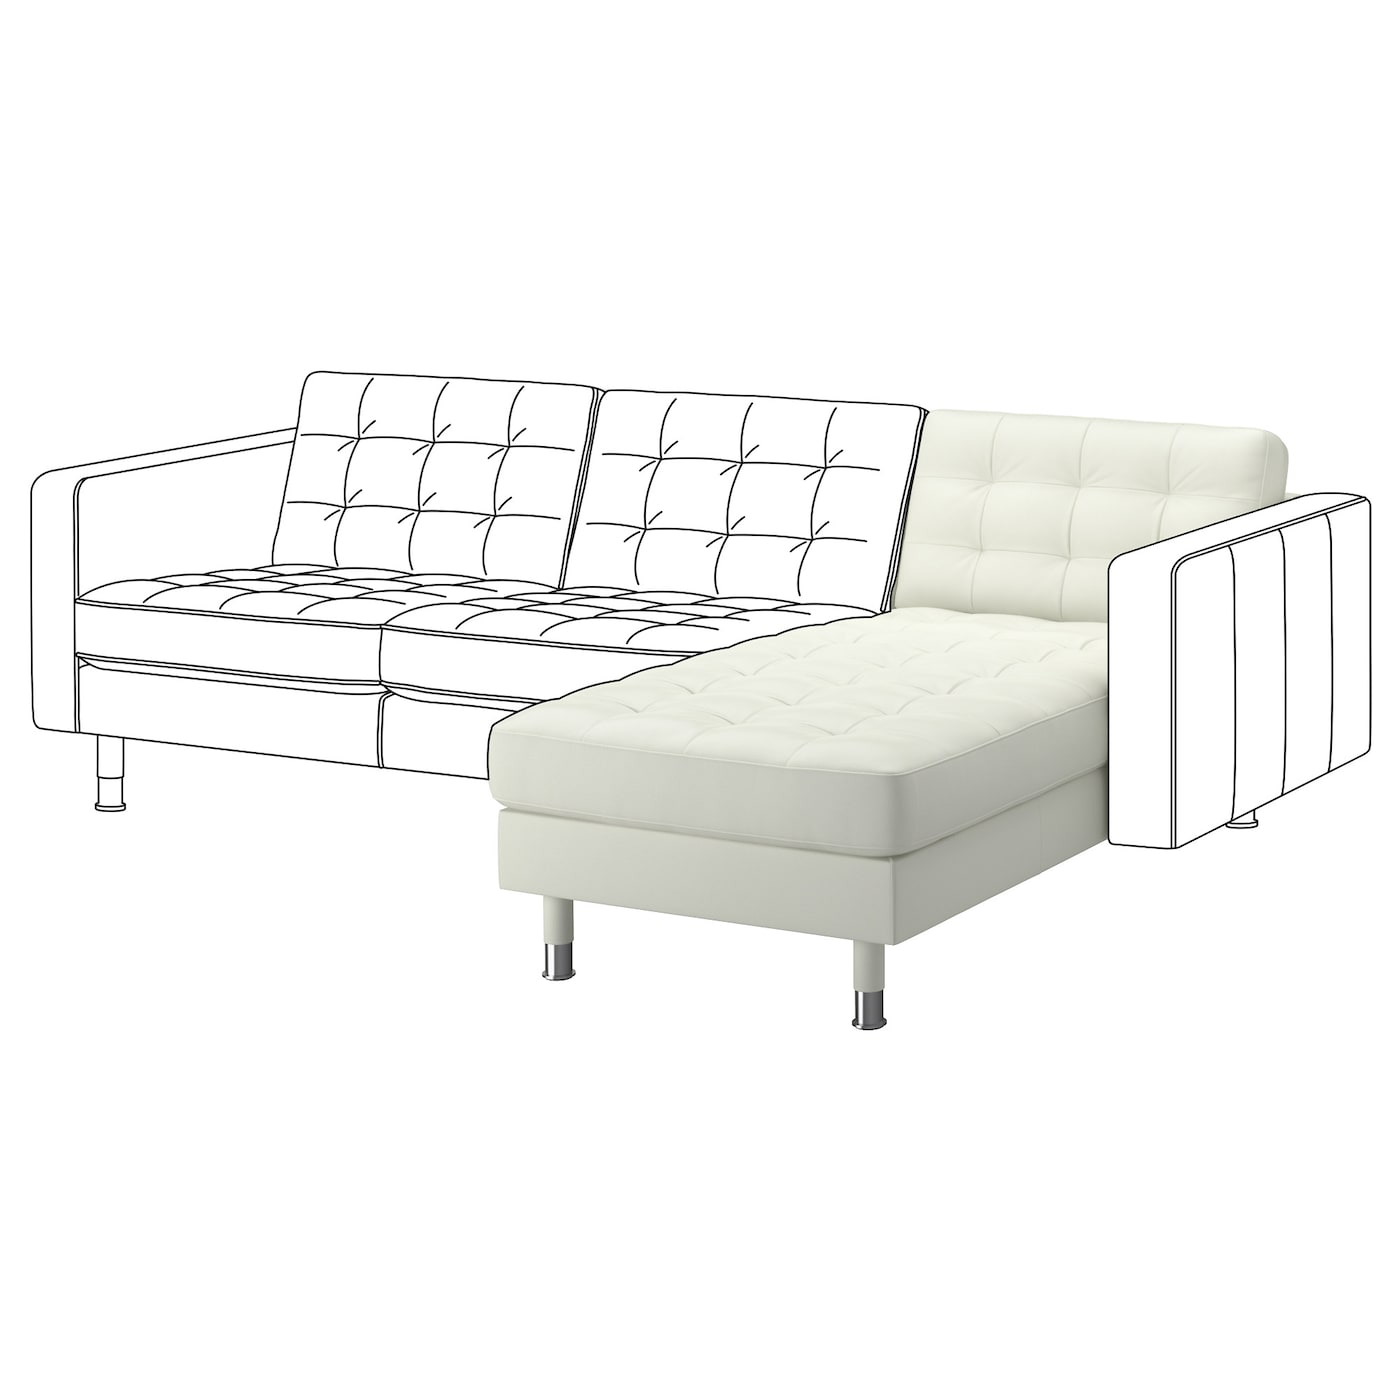 Landskrona chaise longue add on unit grann bomstad white metal ikea - Chaise longue jardin ikea ...